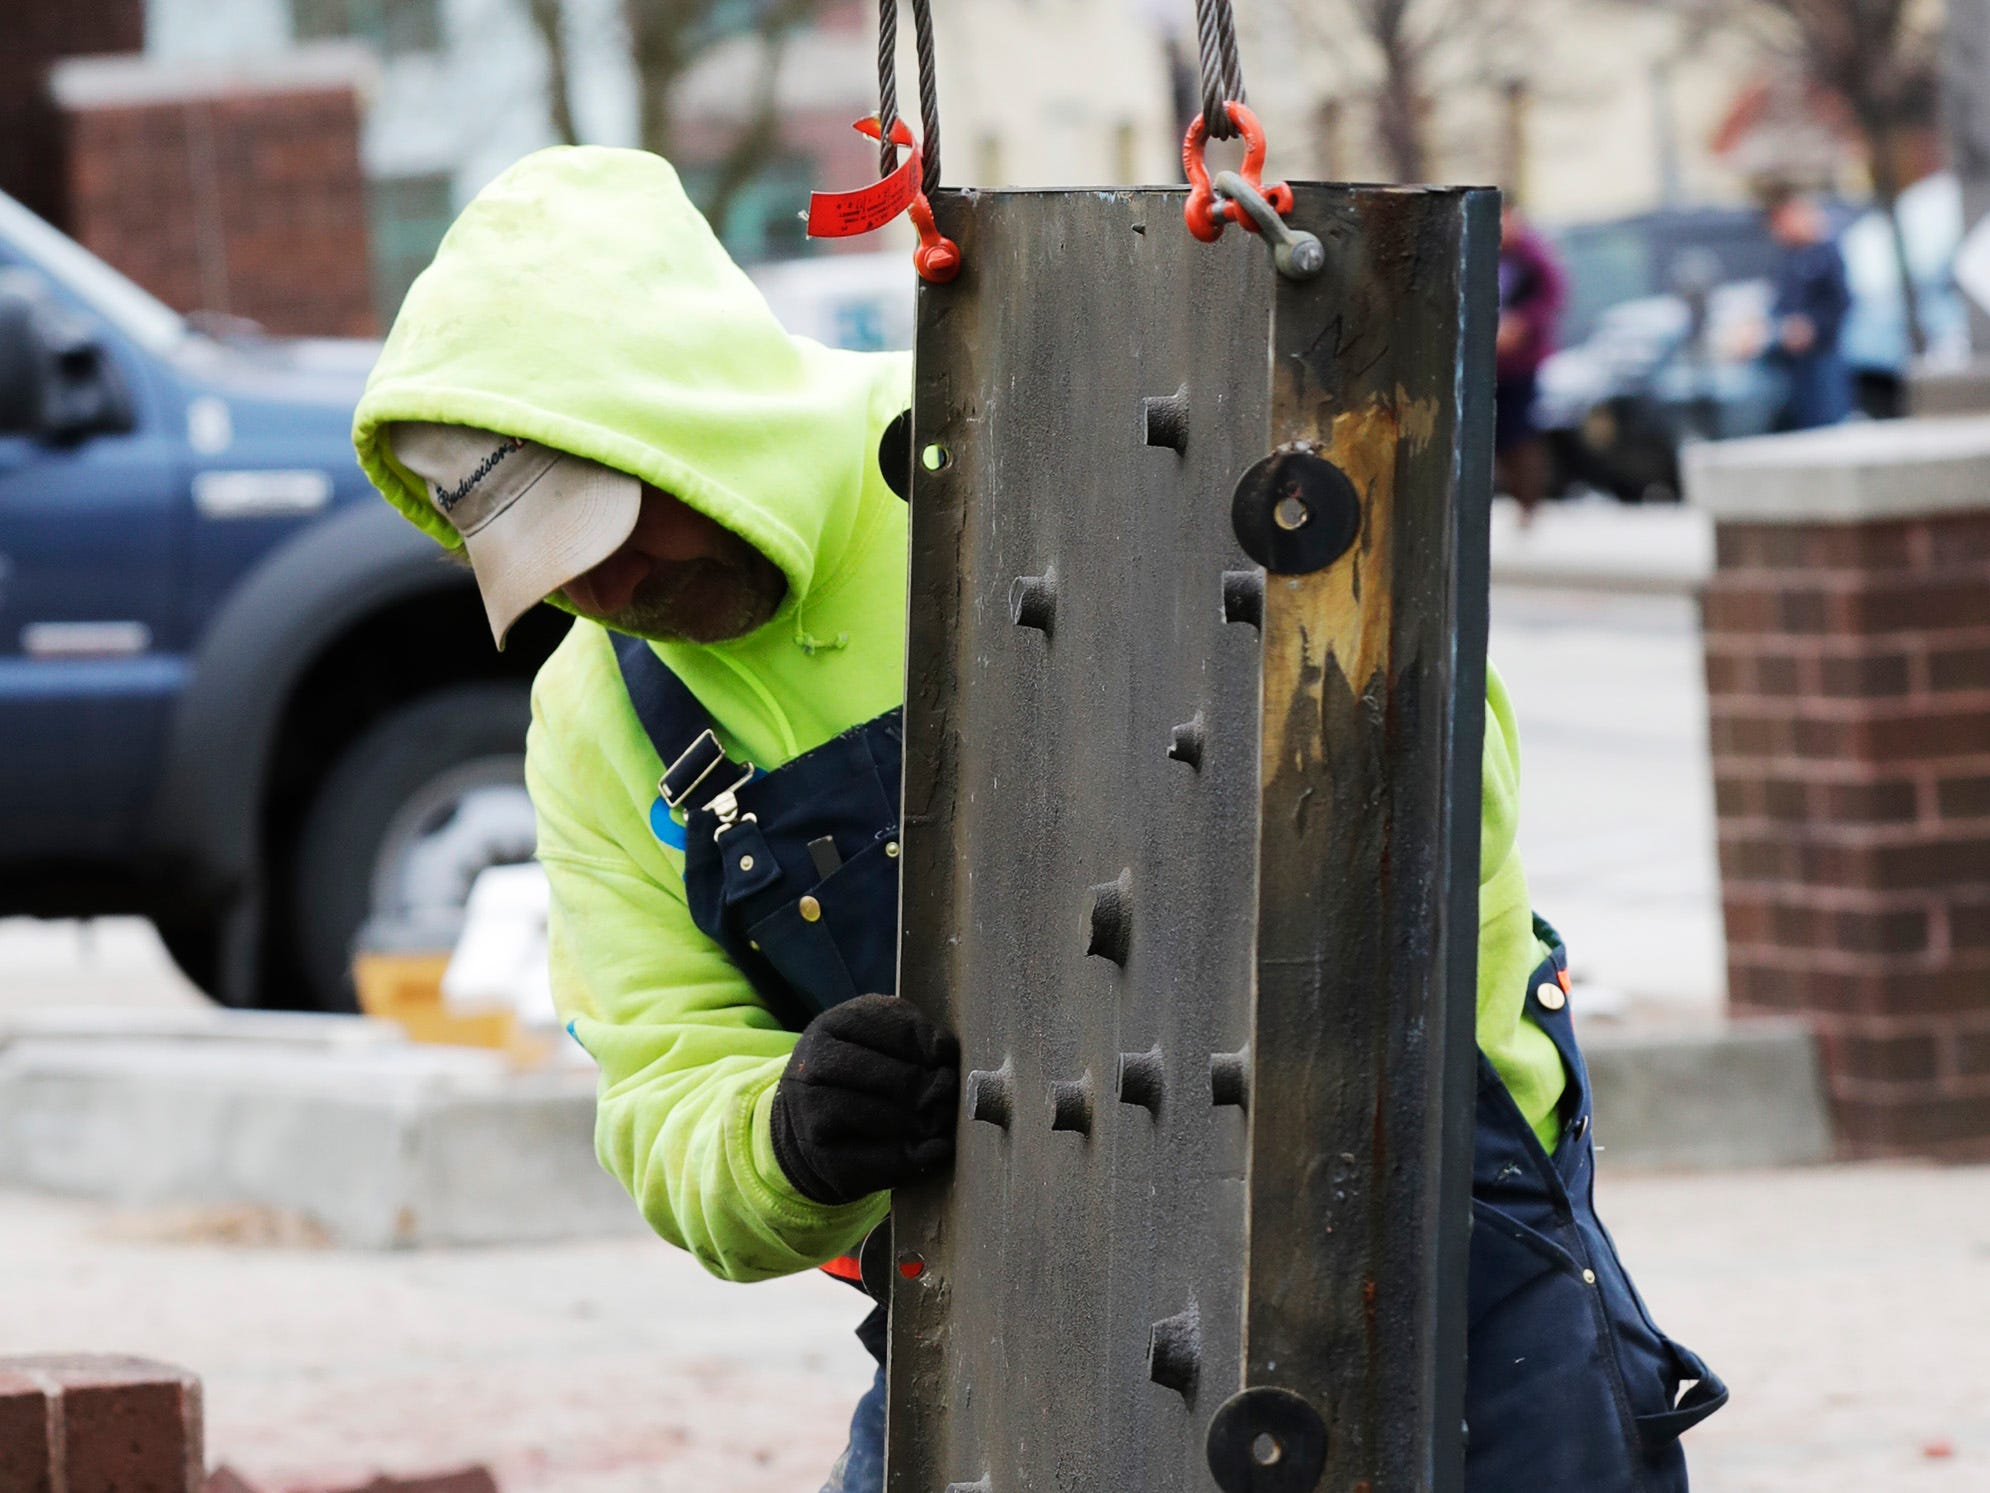 A Koenig Constructions guides a cast panel after removal from the clock tower at Mead Public Library, Wednesday April 10, 2019, in Sheboygan, Wis. The city is repurposing the cast panels for an 8th Street display as part of a renovations project.